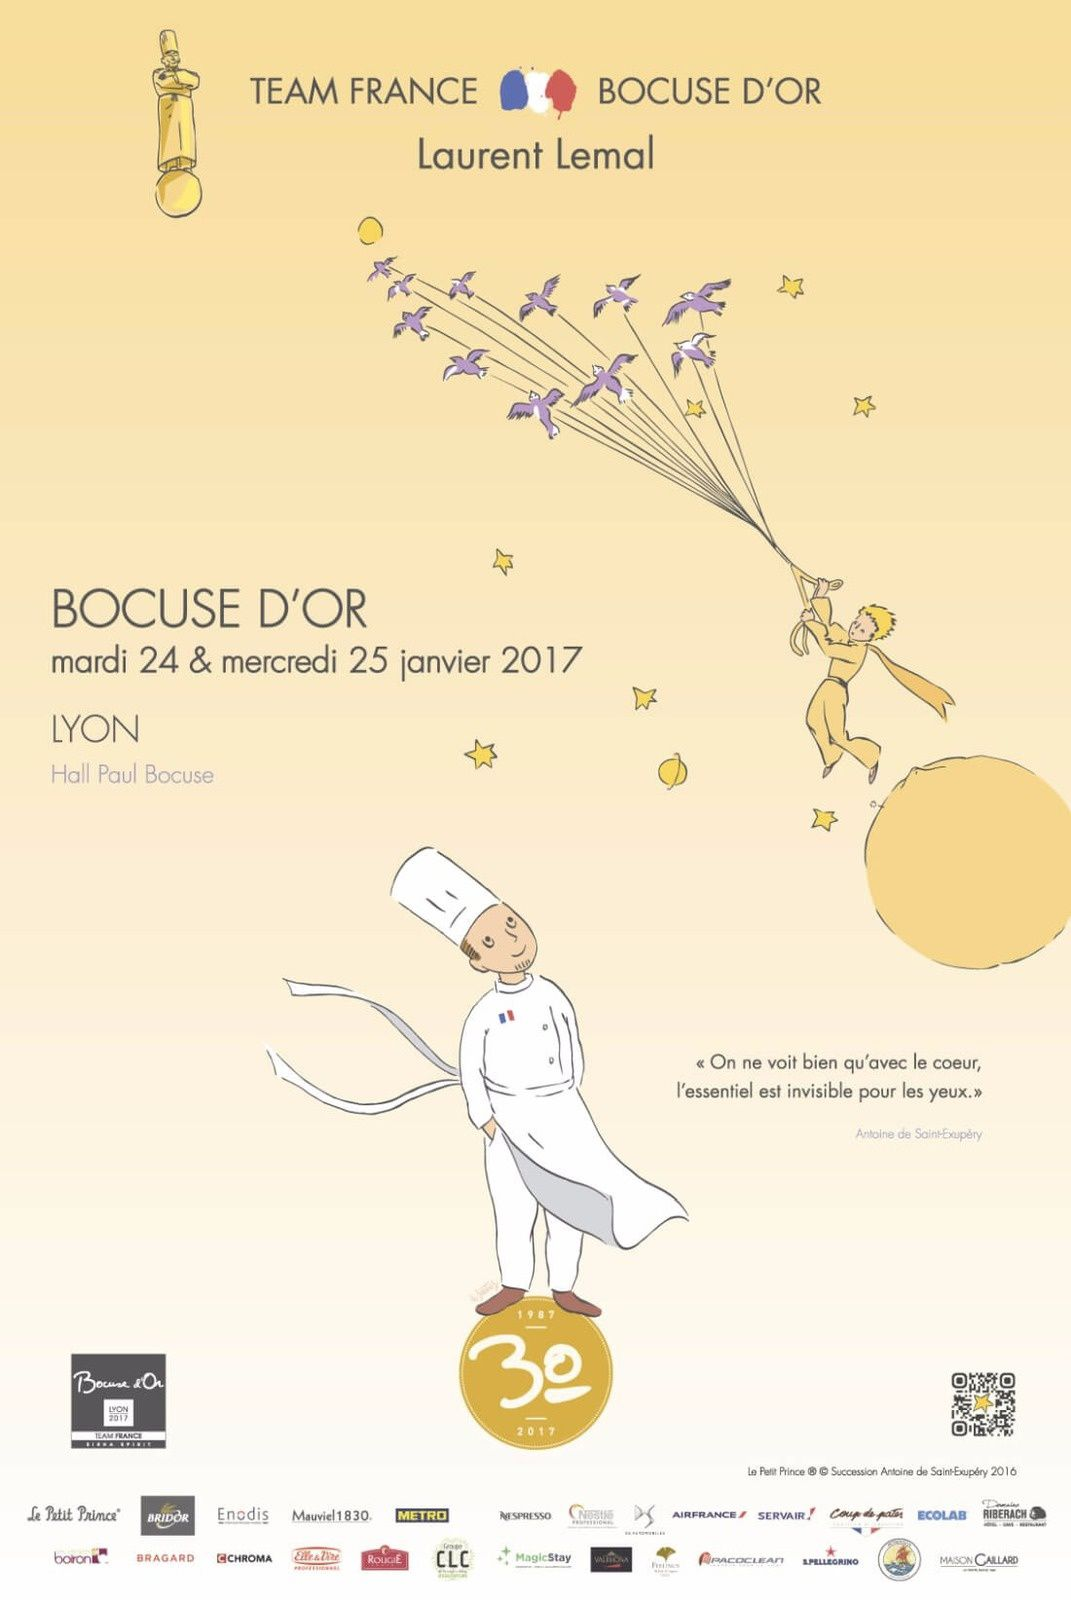 Poster de l'équipe de France - Bocuse d'Or 2017